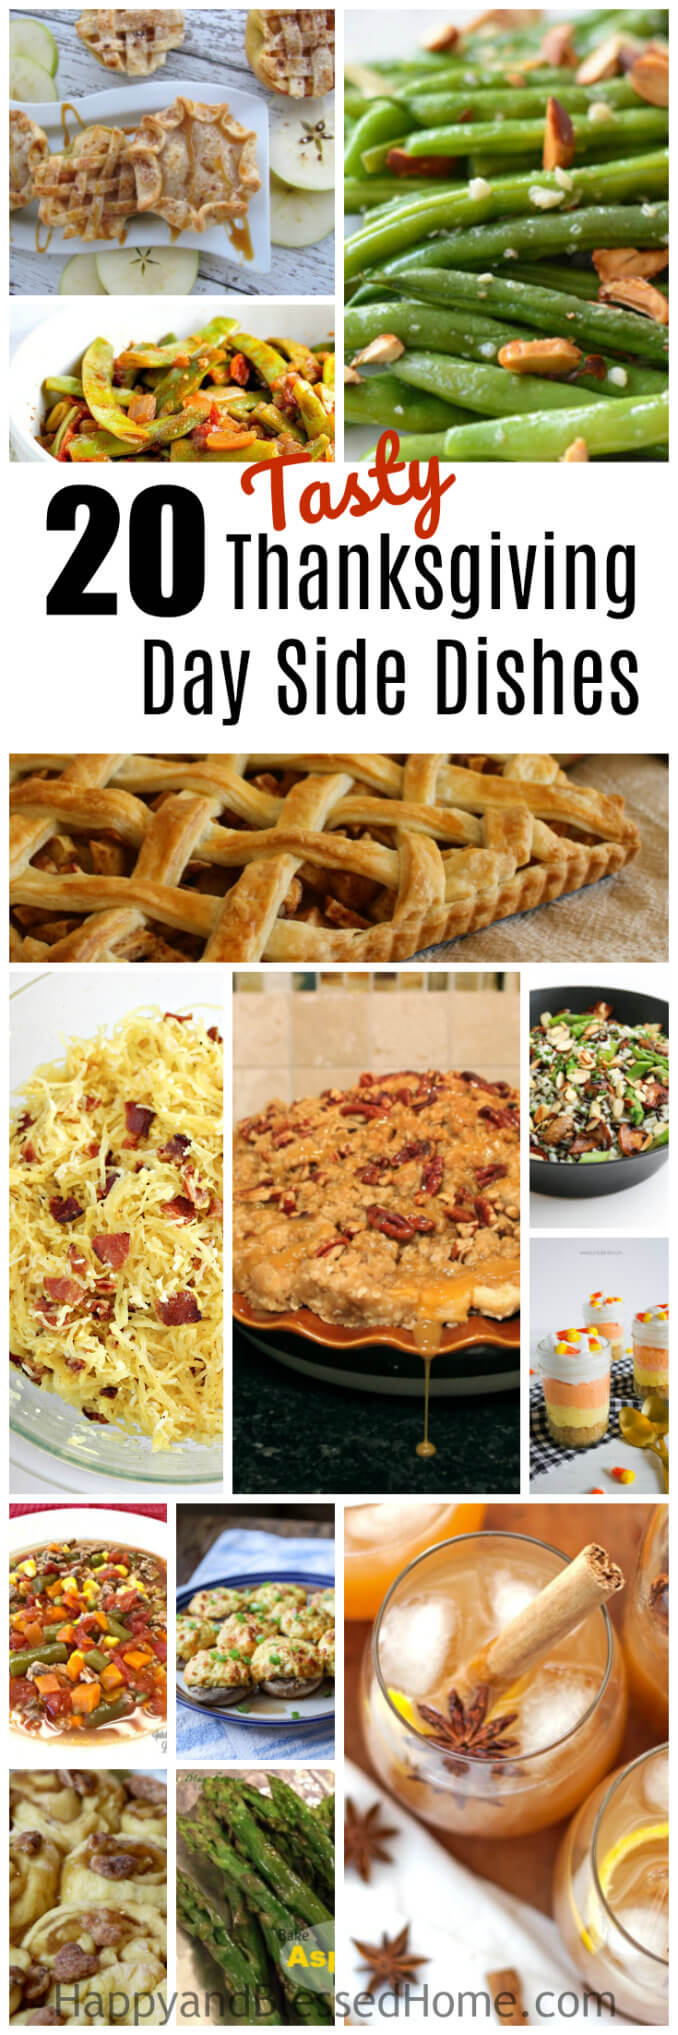 20 Tasty Thanksgiving Day Side Dishes